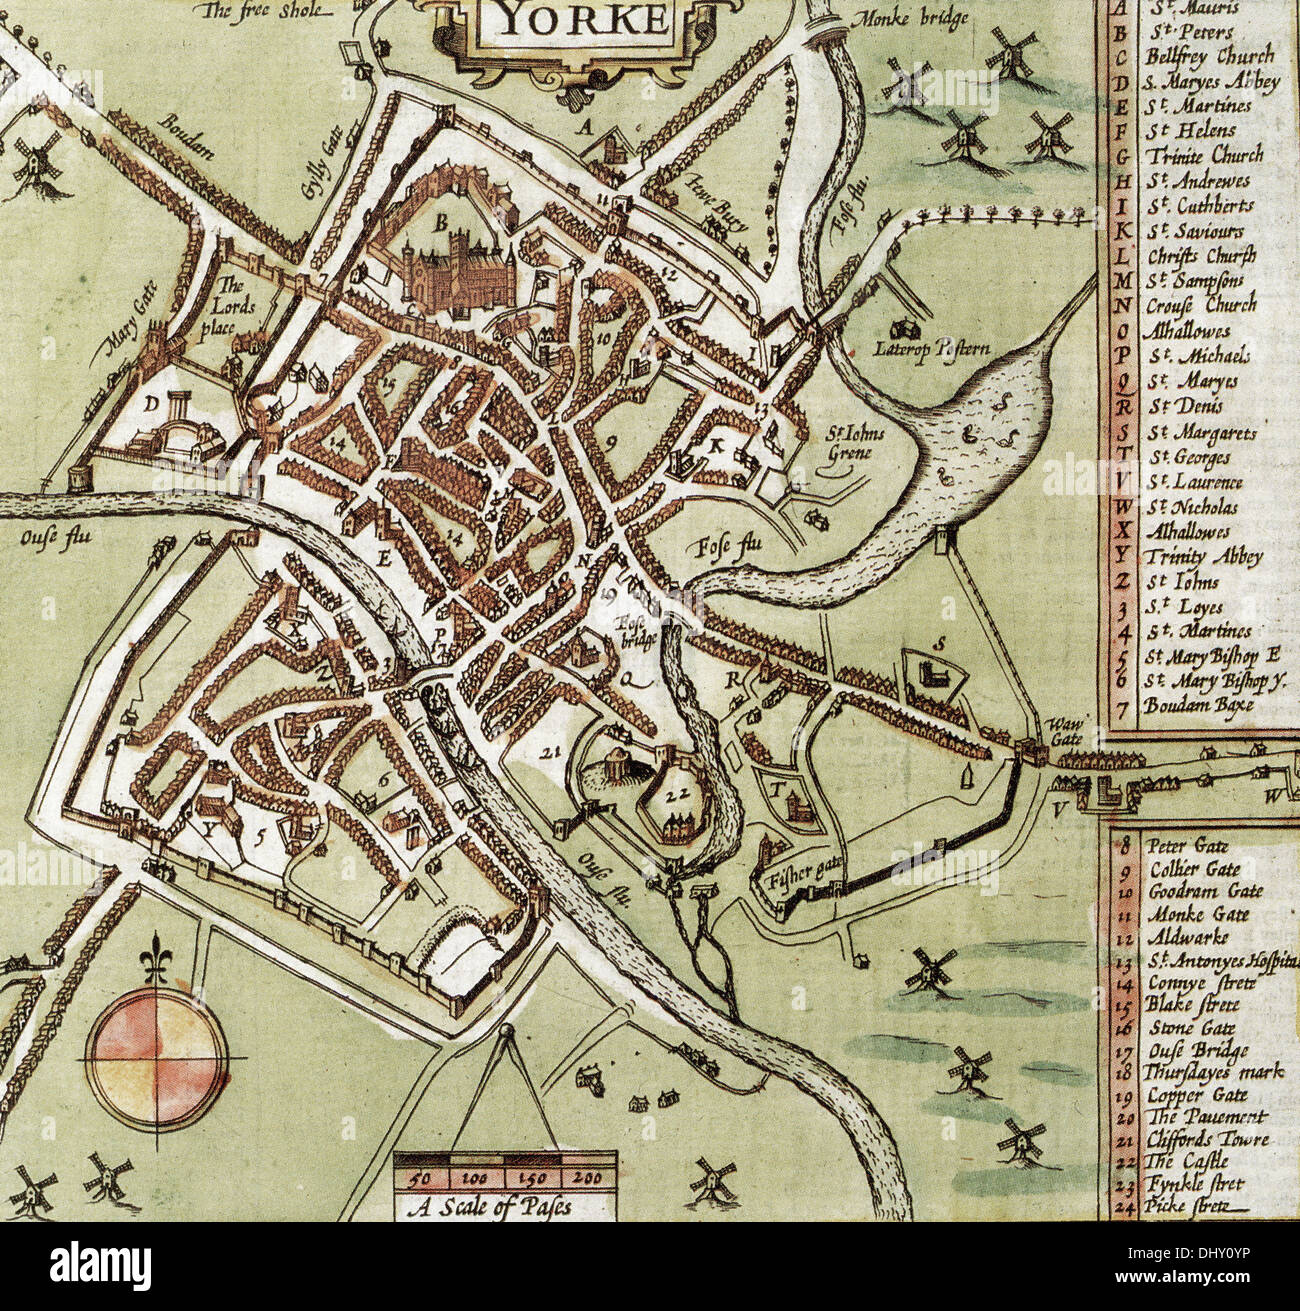 Map Of England 200.Old Map Of York England By John Speed 1611 Stock Photo 62673738